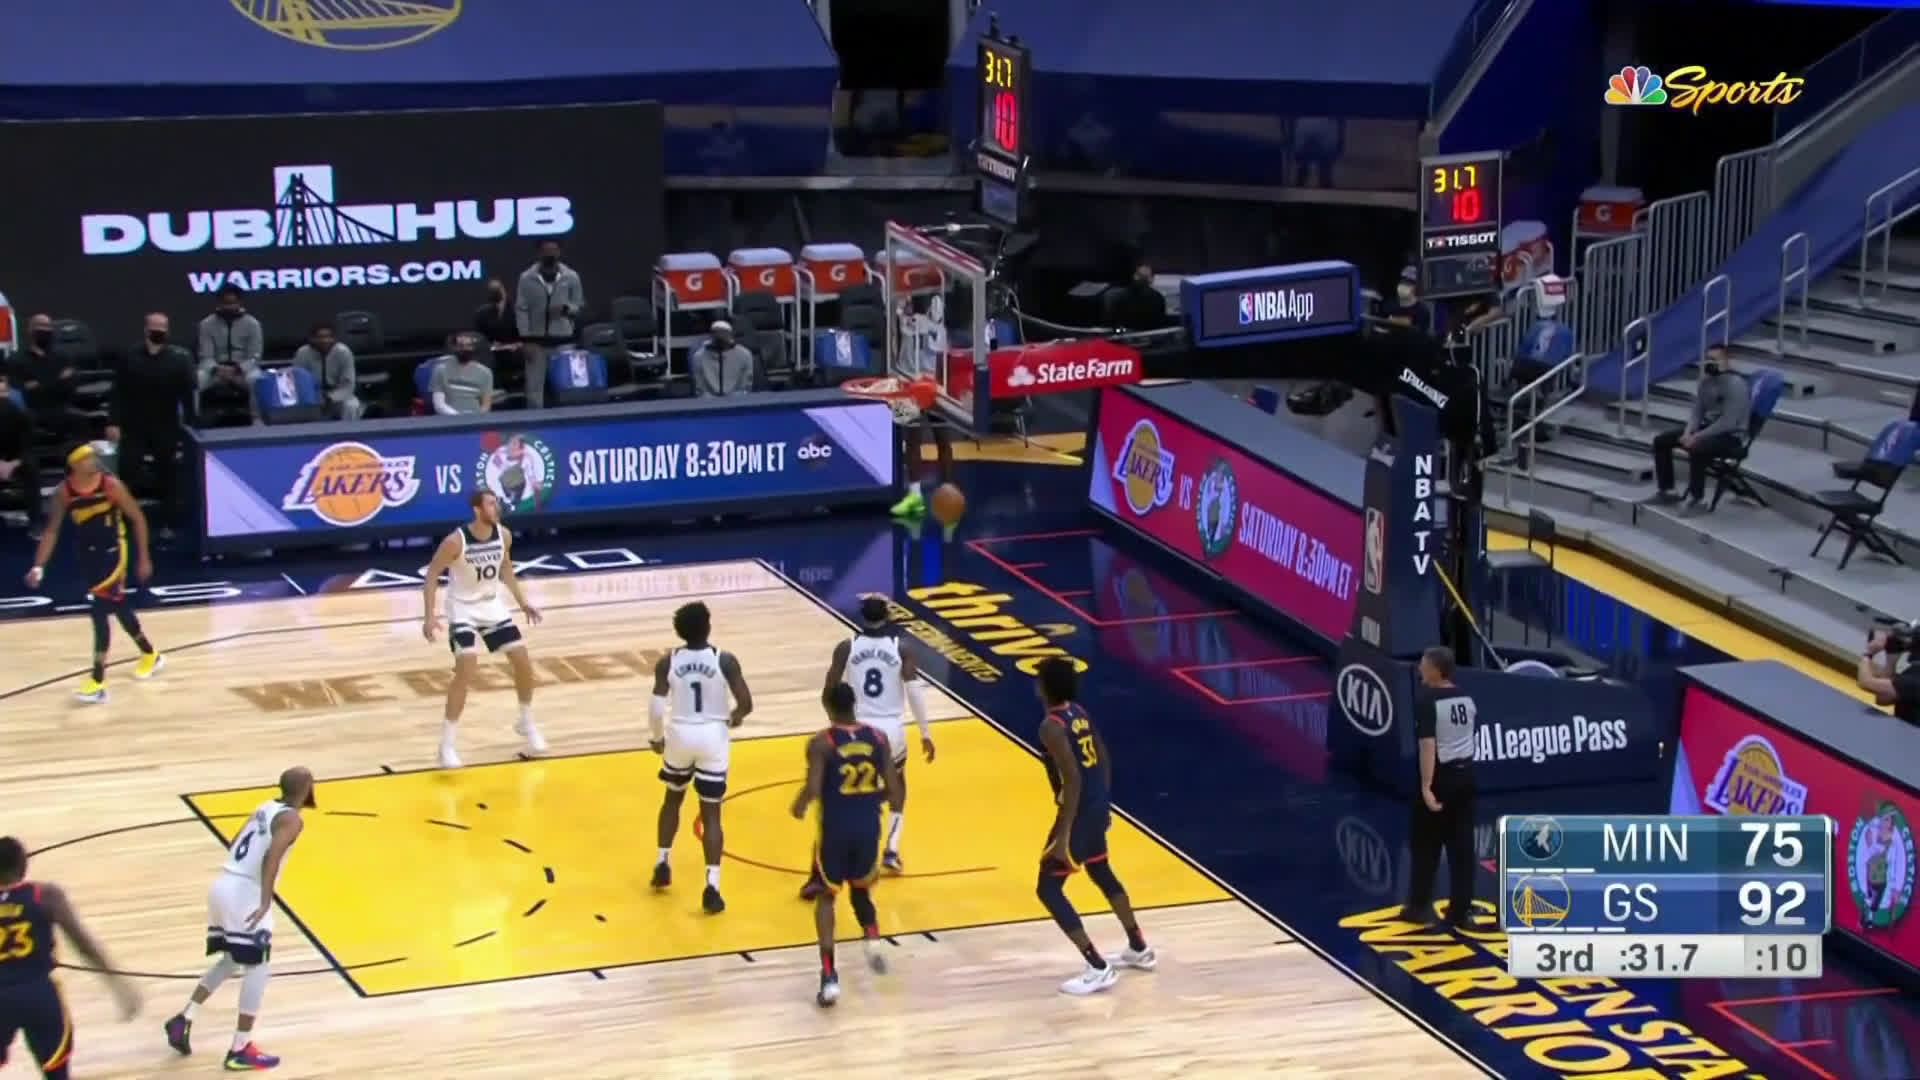 [Highlight] Curry hits the stepback after a flurry of dribbles